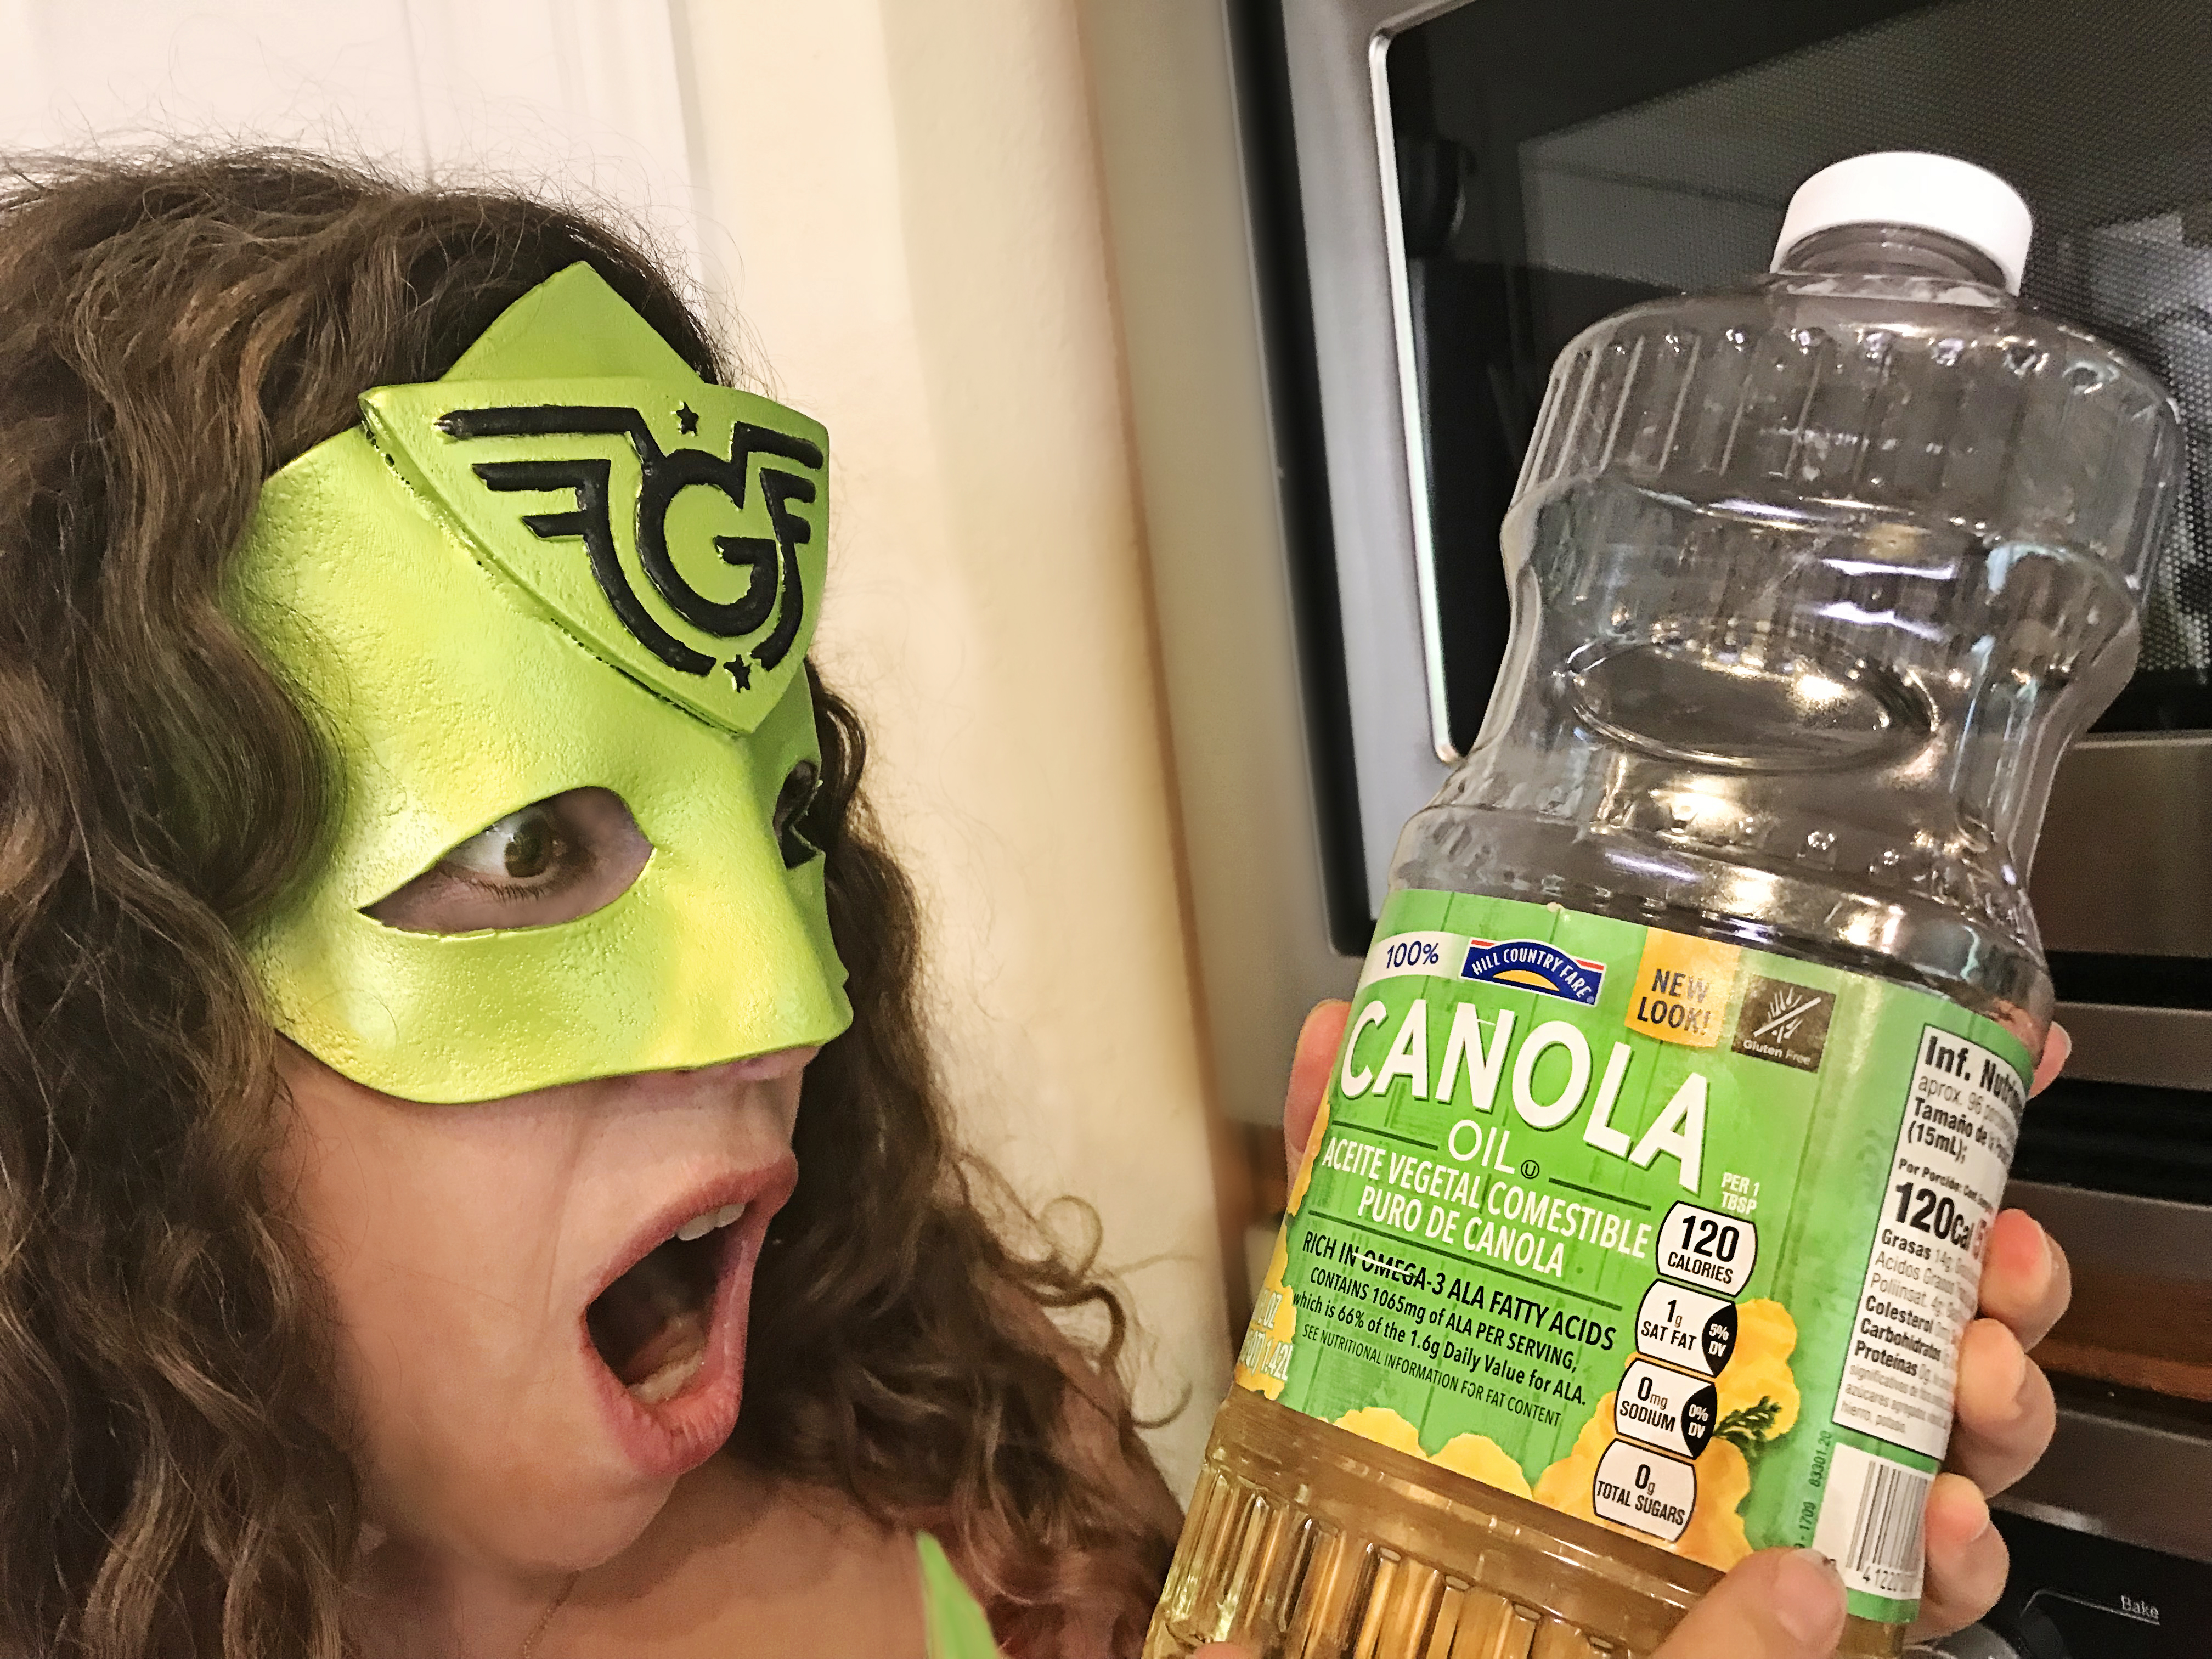 Cooking with Garbage Oil? (Want to know my favorite brands?)